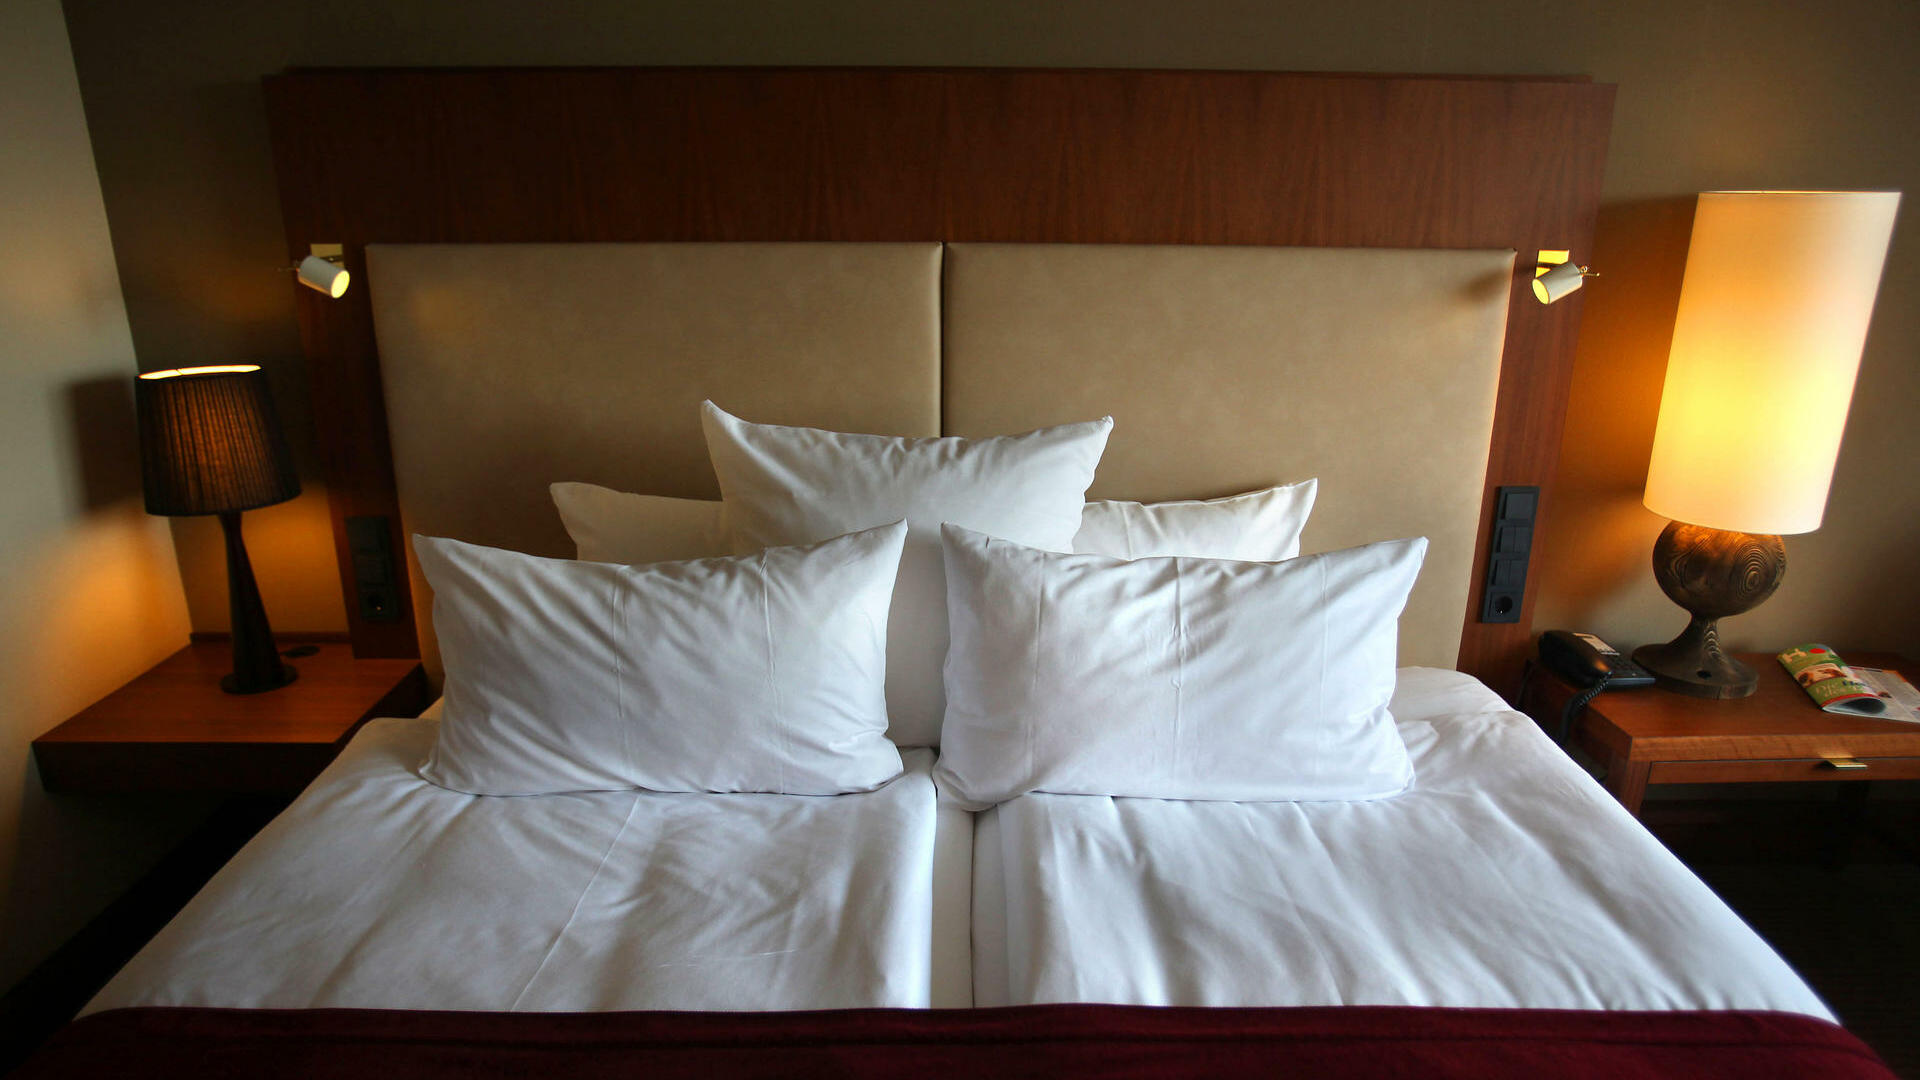 Bettlaken Quelle: dpa